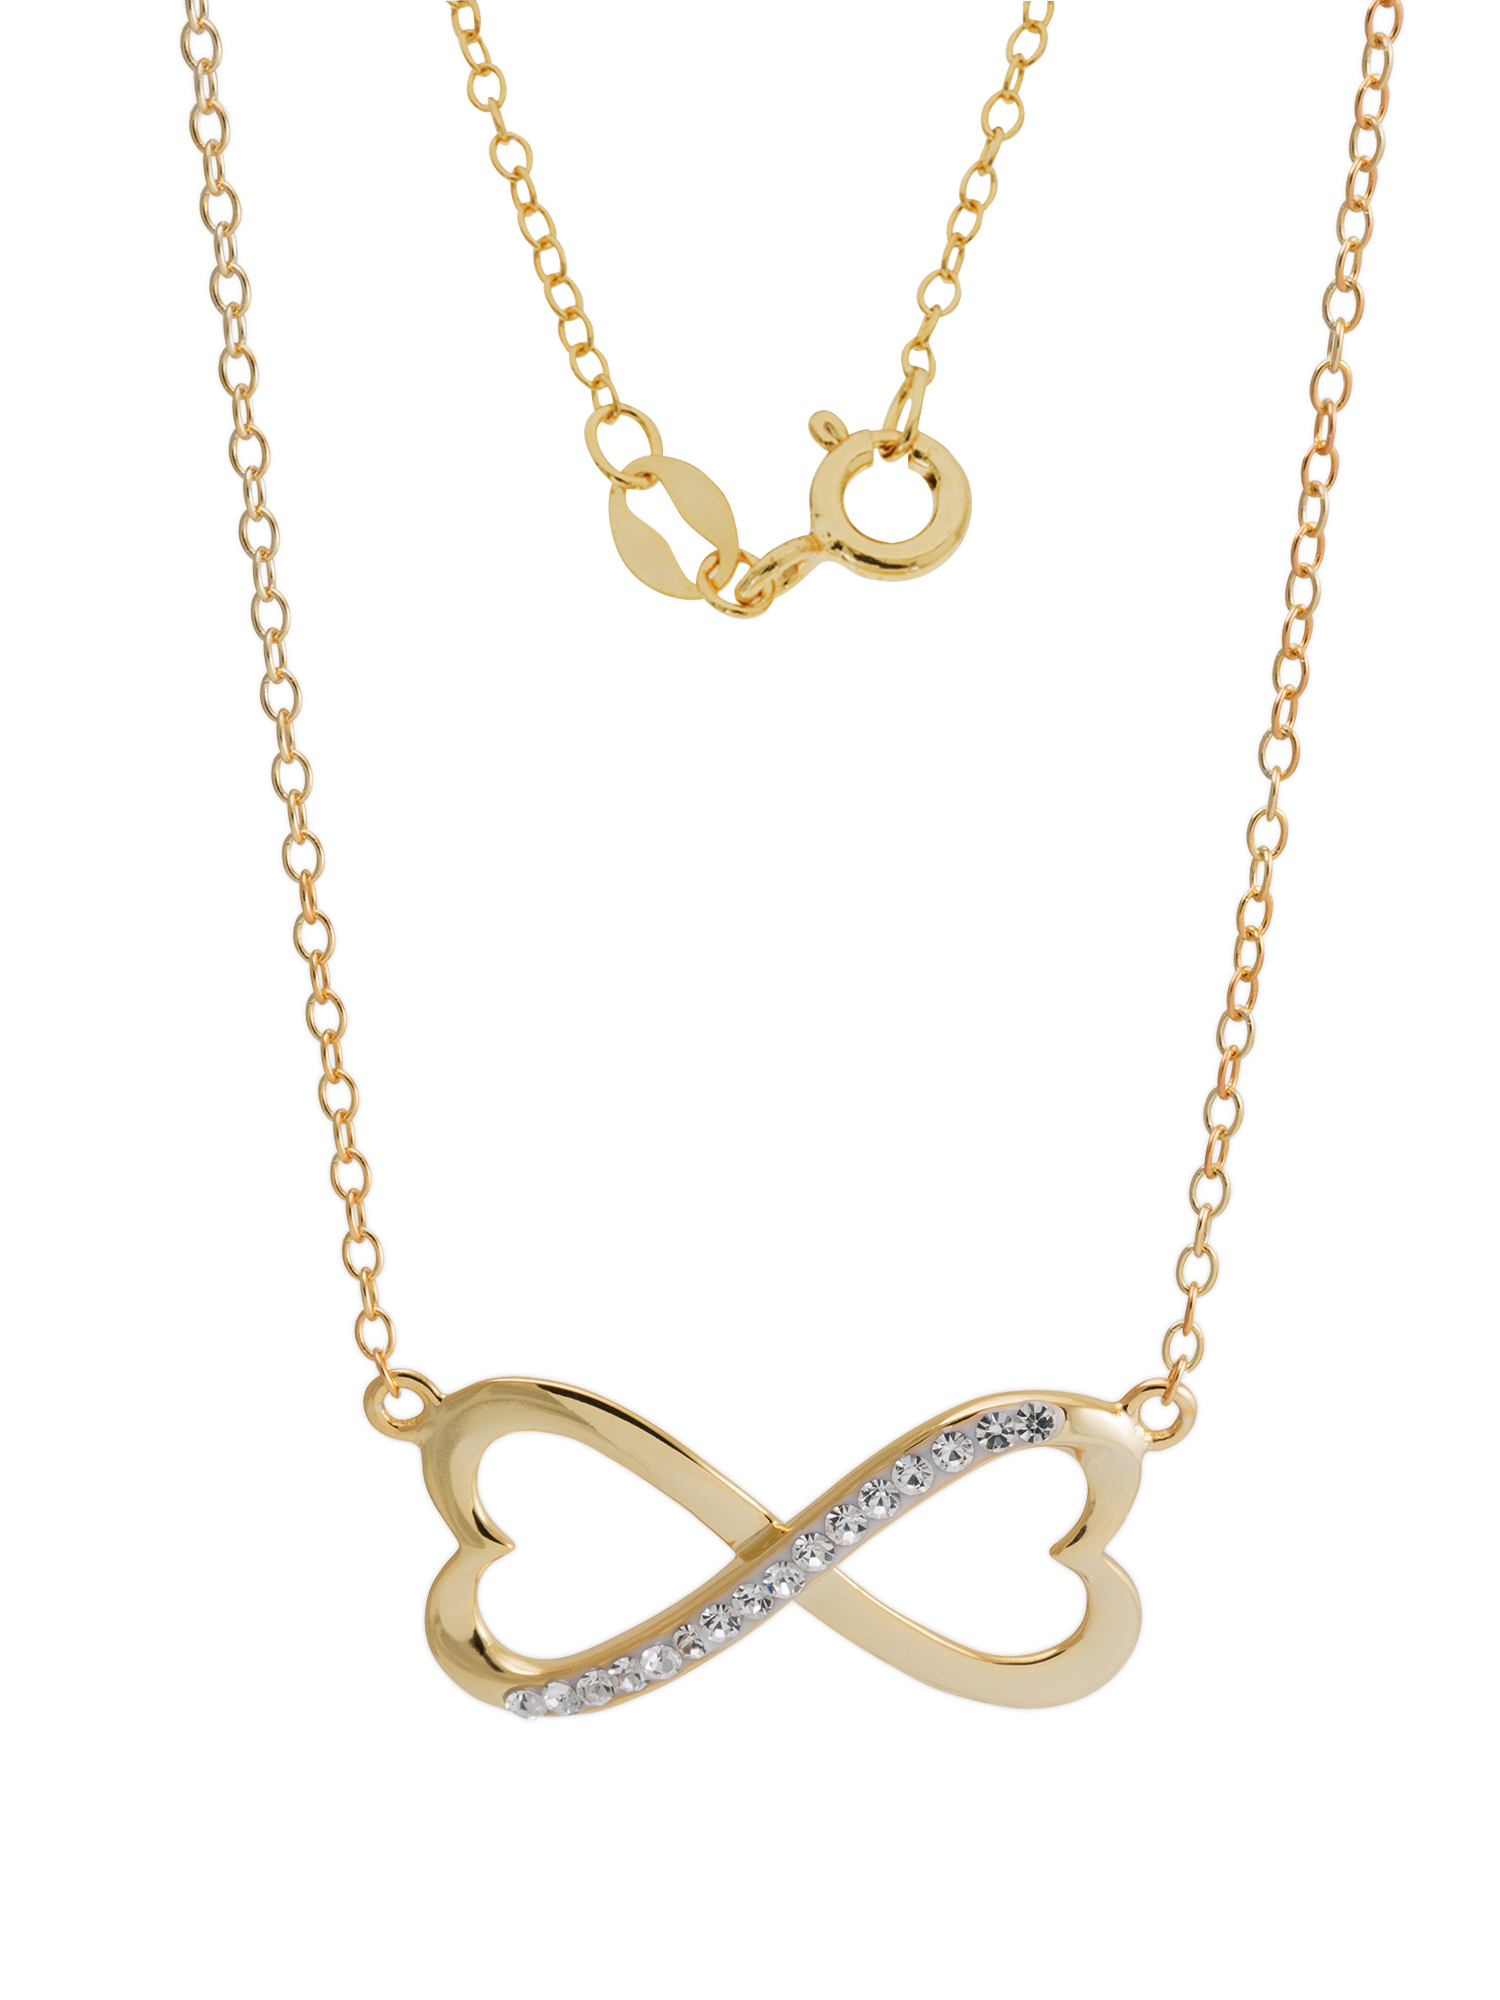 18kt Gold Over Silver Clear Crystal Infinity/heart Necklace With Current Heart Fan Pendant Necklaces (View 15 of 25)